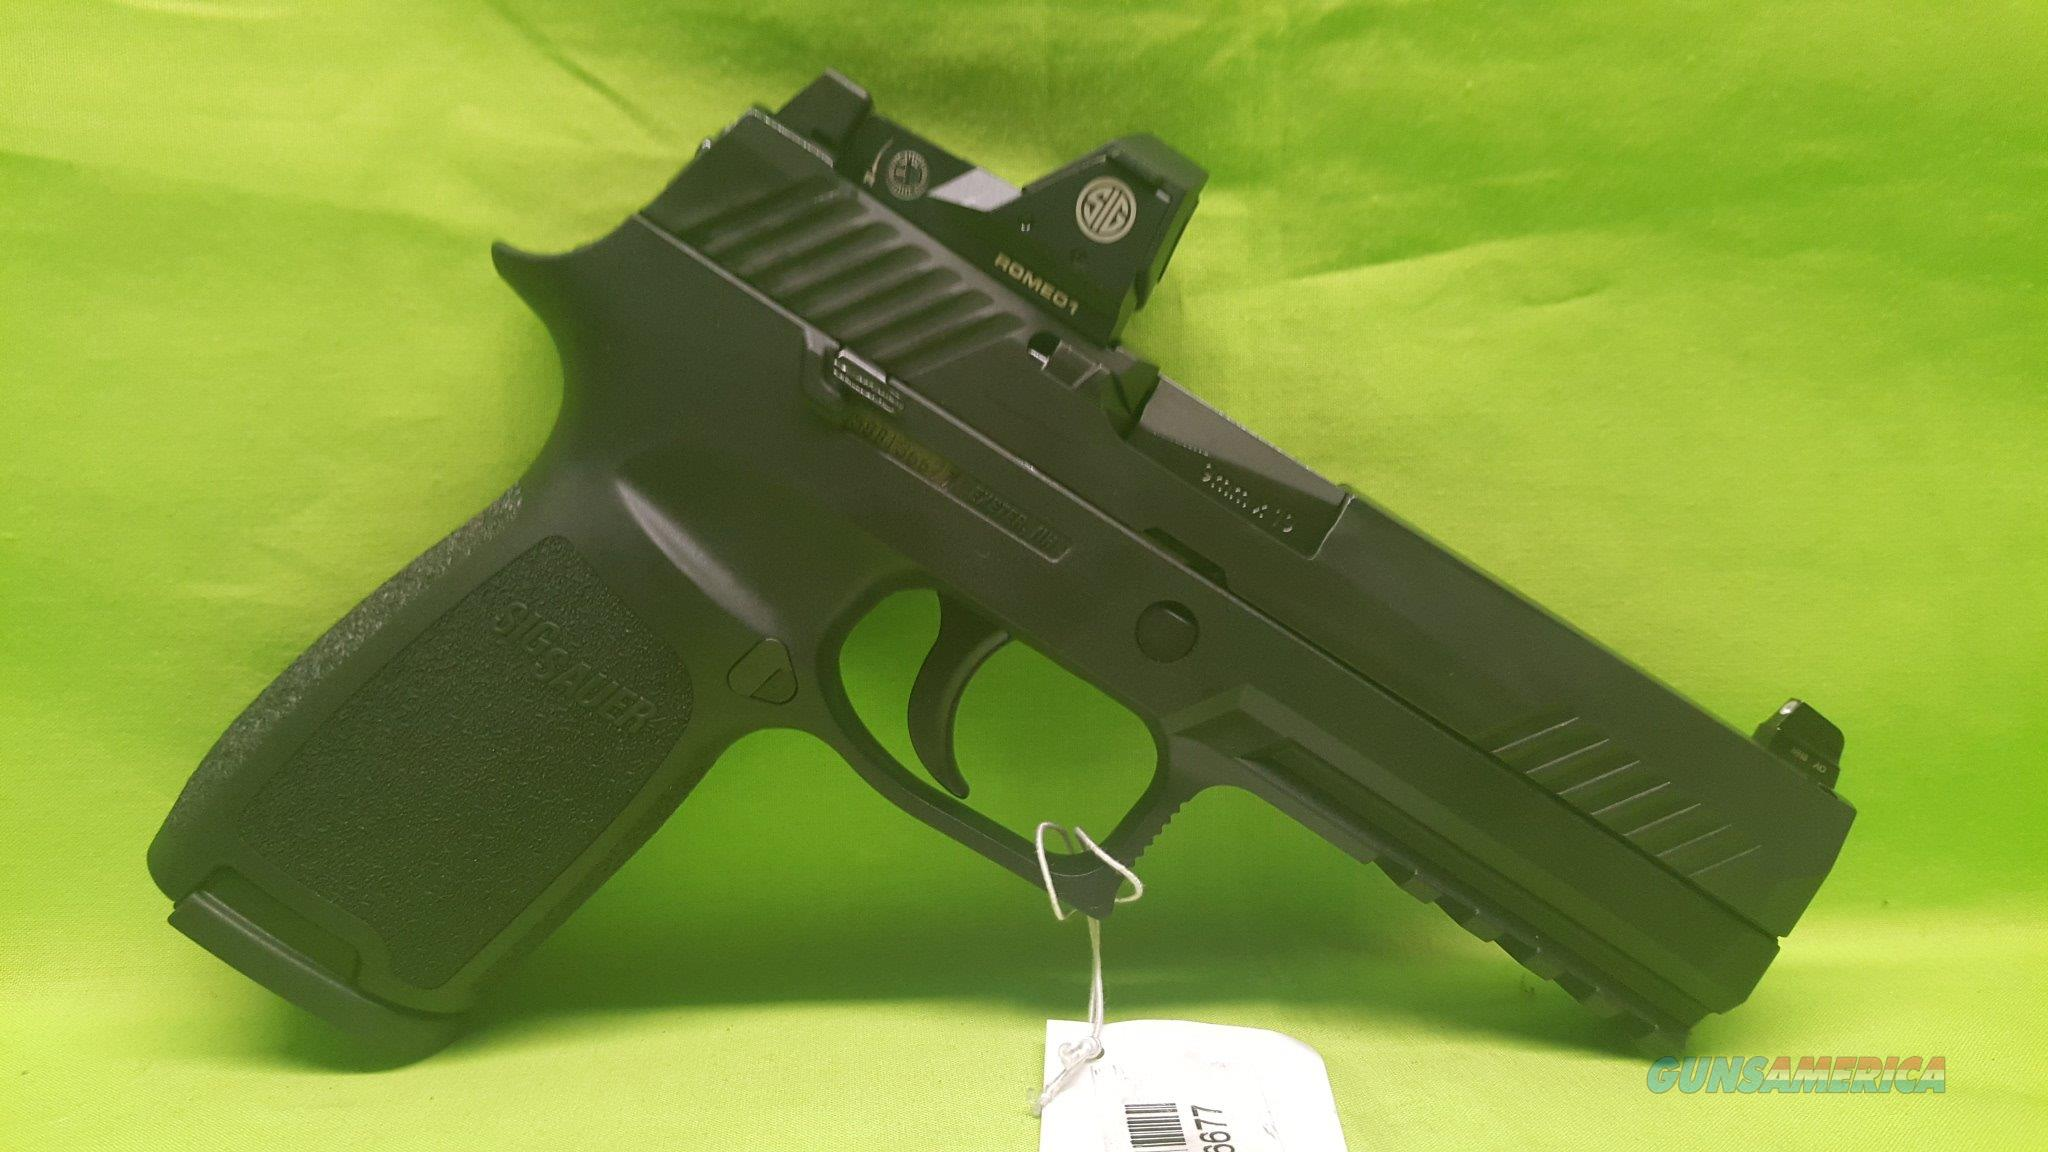 SIG P320 P 320 F RX 9MM 9 MM 17RD ROMEO SIGHT INCL  Guns > Pistols > Sig - Sauer/Sigarms Pistols > Other